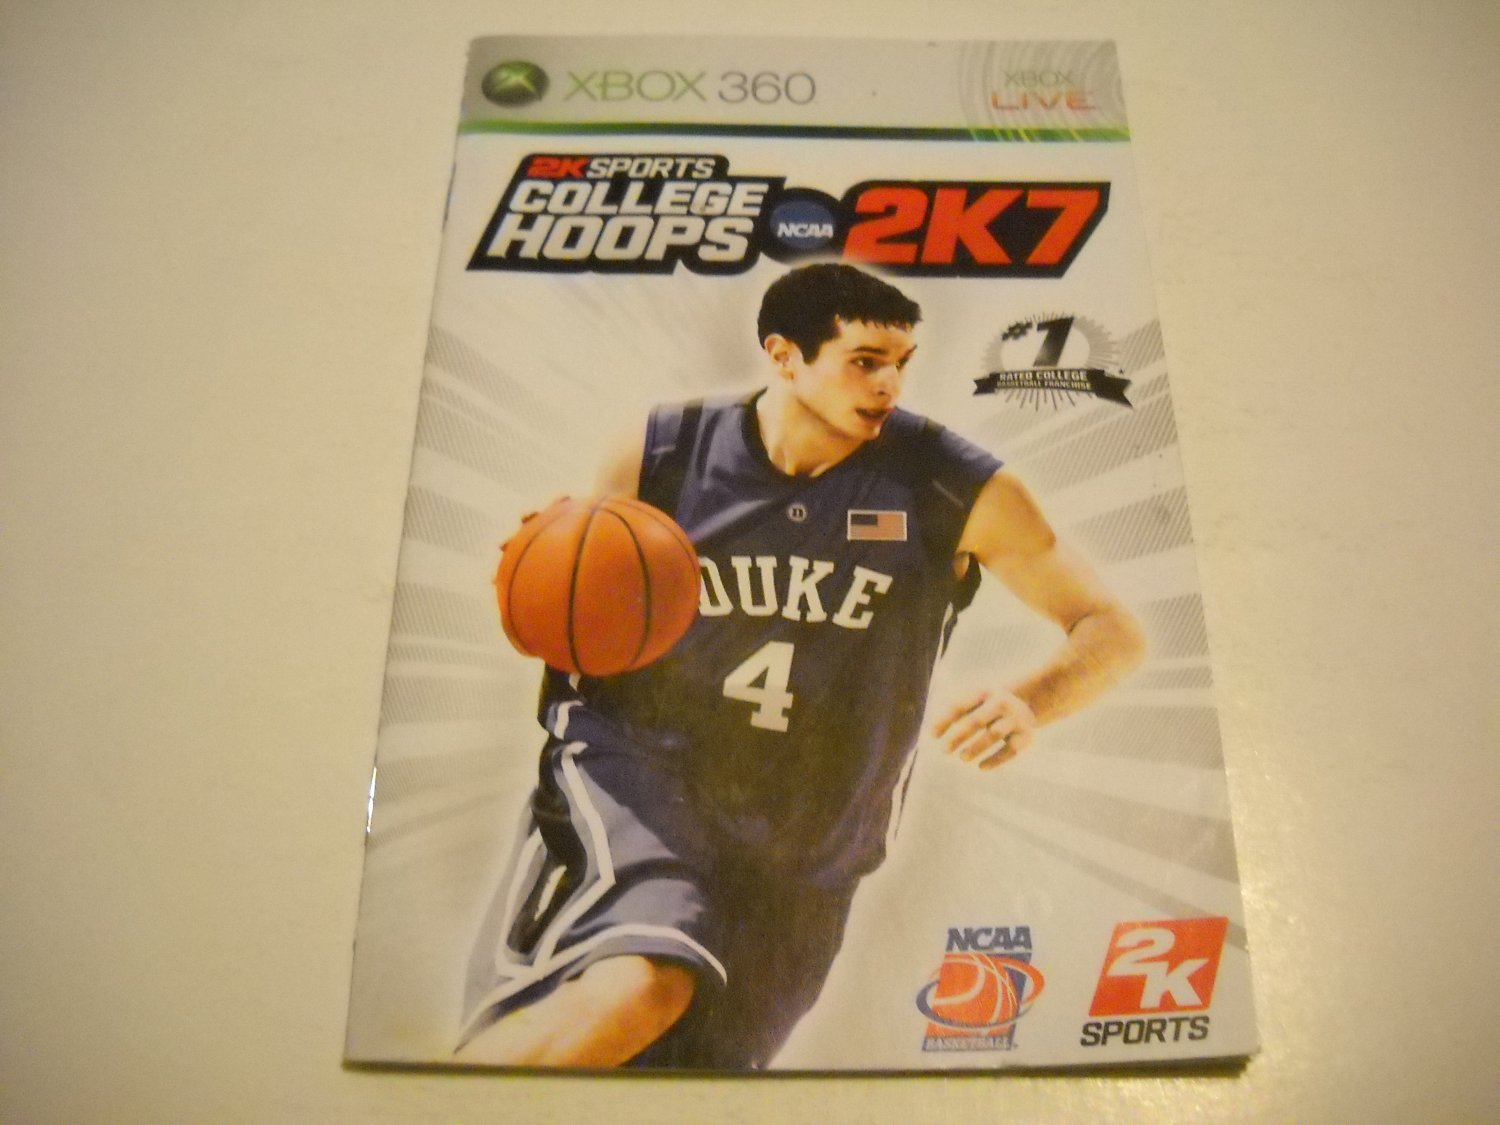 Manual ONLY ~  for NCAA College Hoops 2K7   - Xbox 360 Instruction Booklet